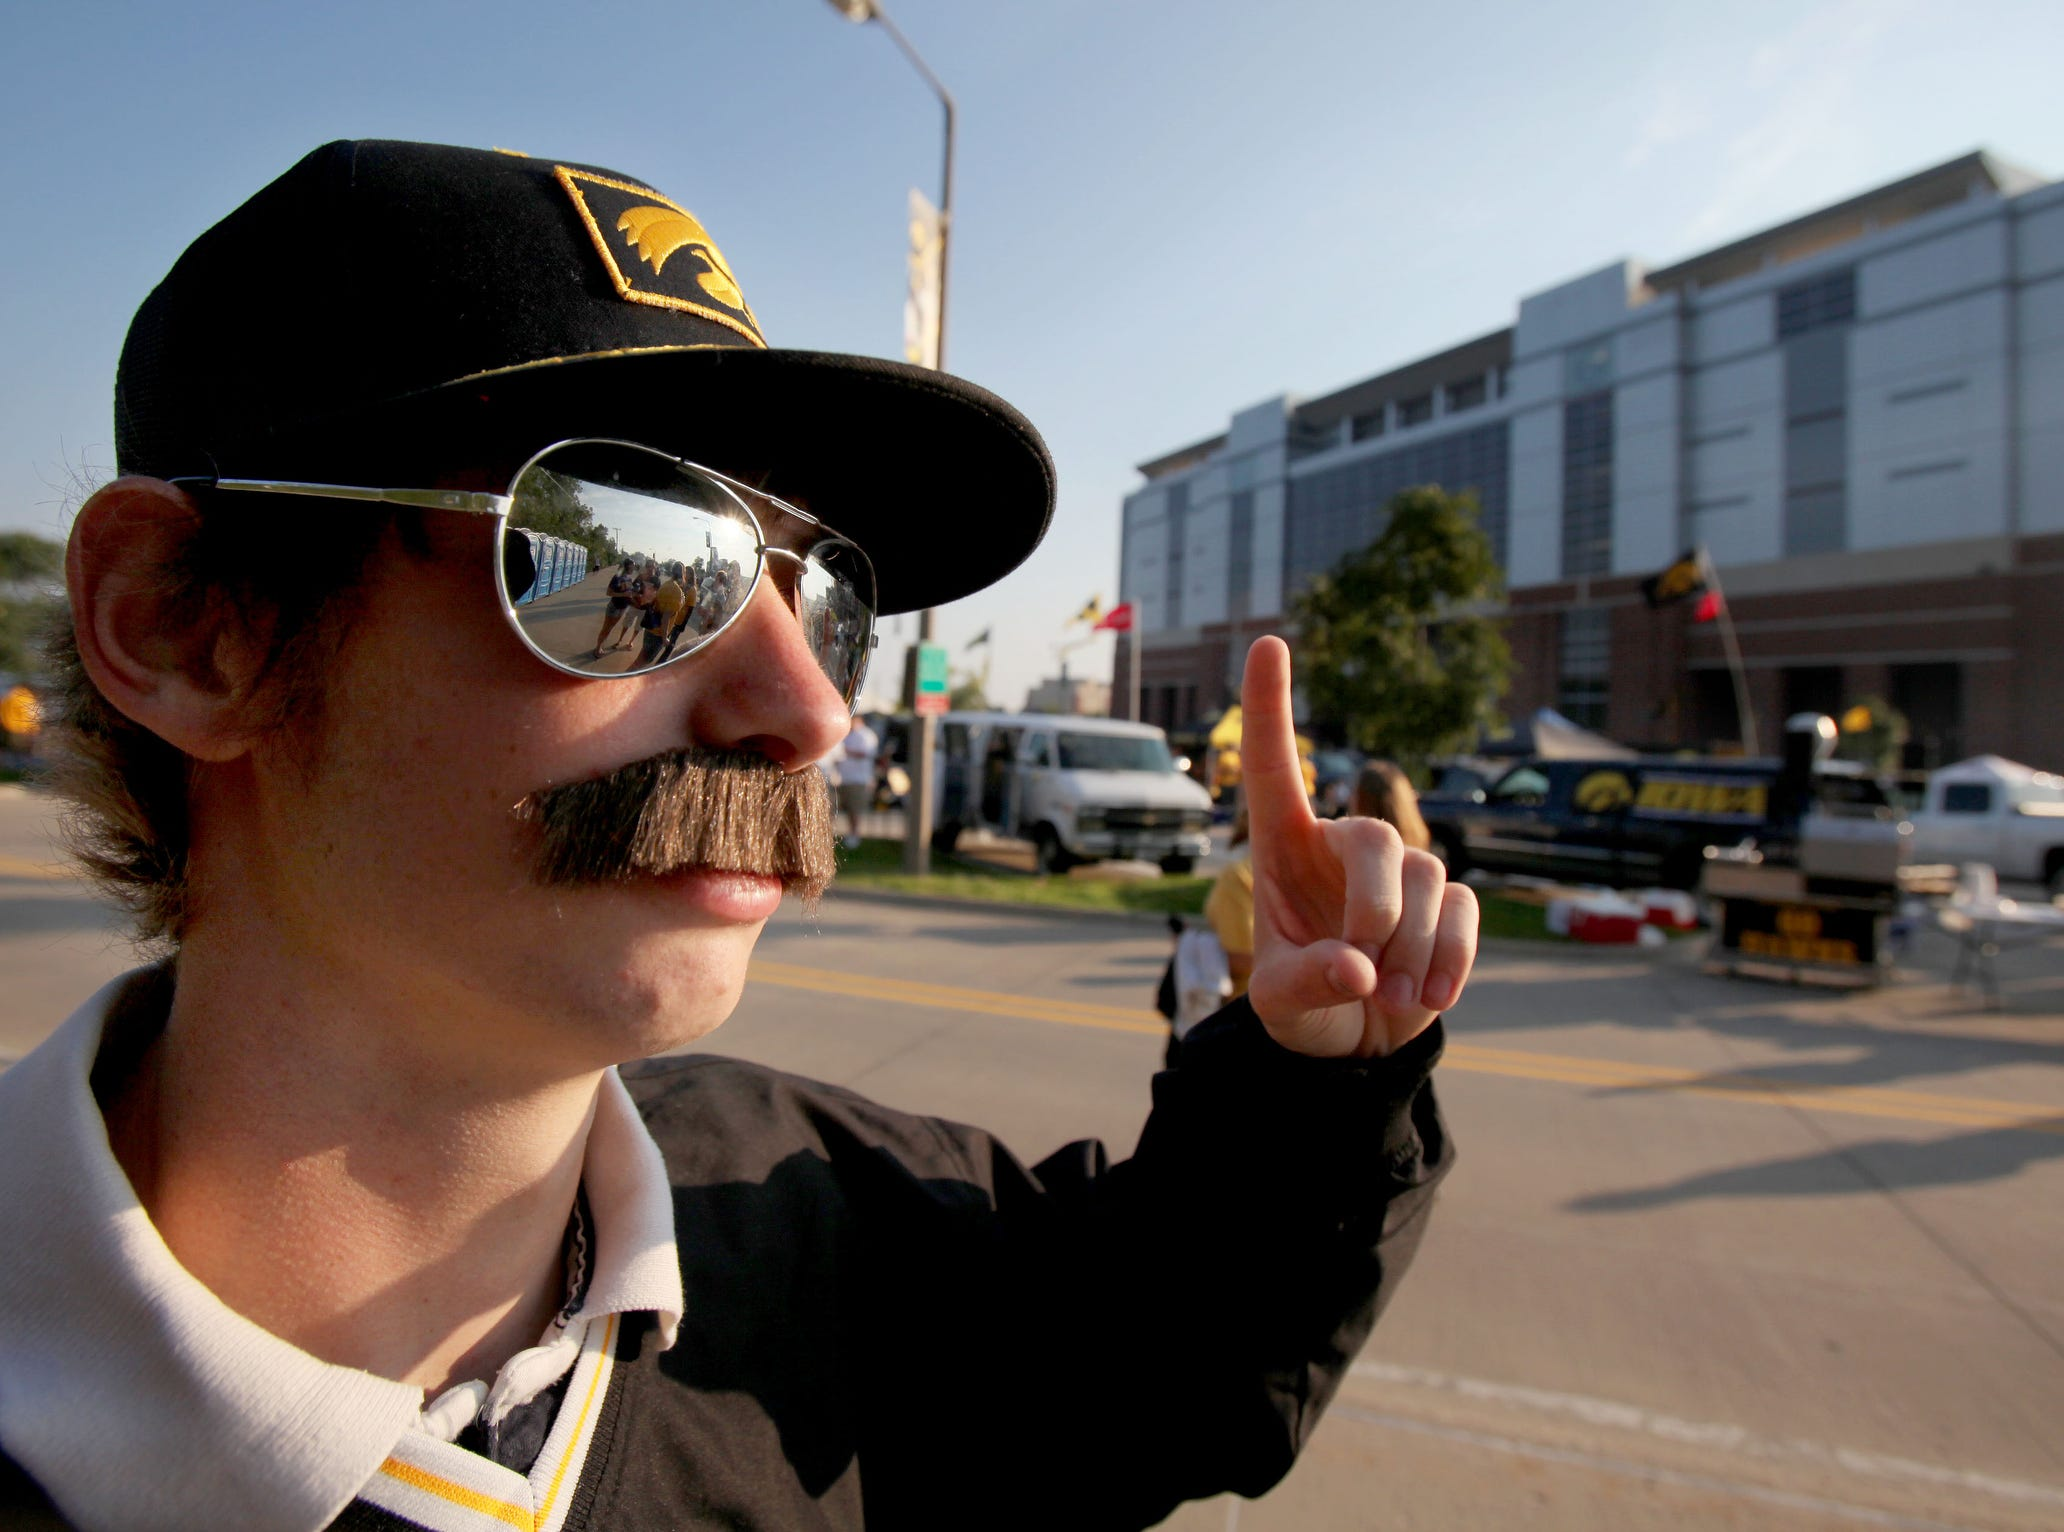 Hayden Fry impersonator Matt Travis of Iowa City greets Hawkeyes fans before Iowa's football season opener against Northern Iowa on Sept. 5, 2009 in Iowa City.